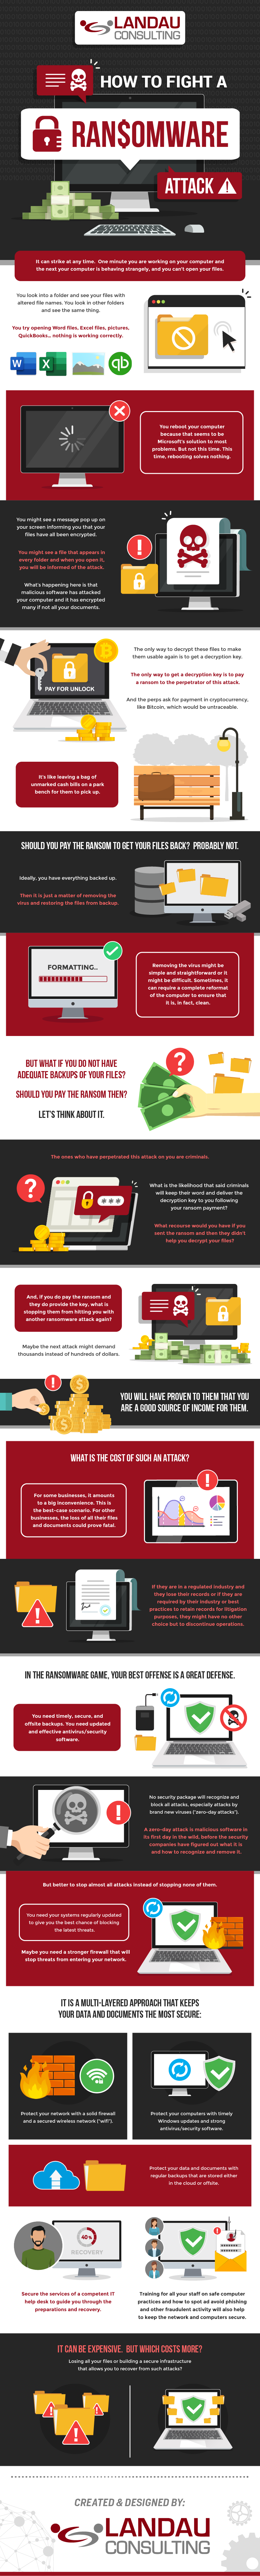 Offence is Defense: How to Fight Back Ransomware Attacks - Infographic